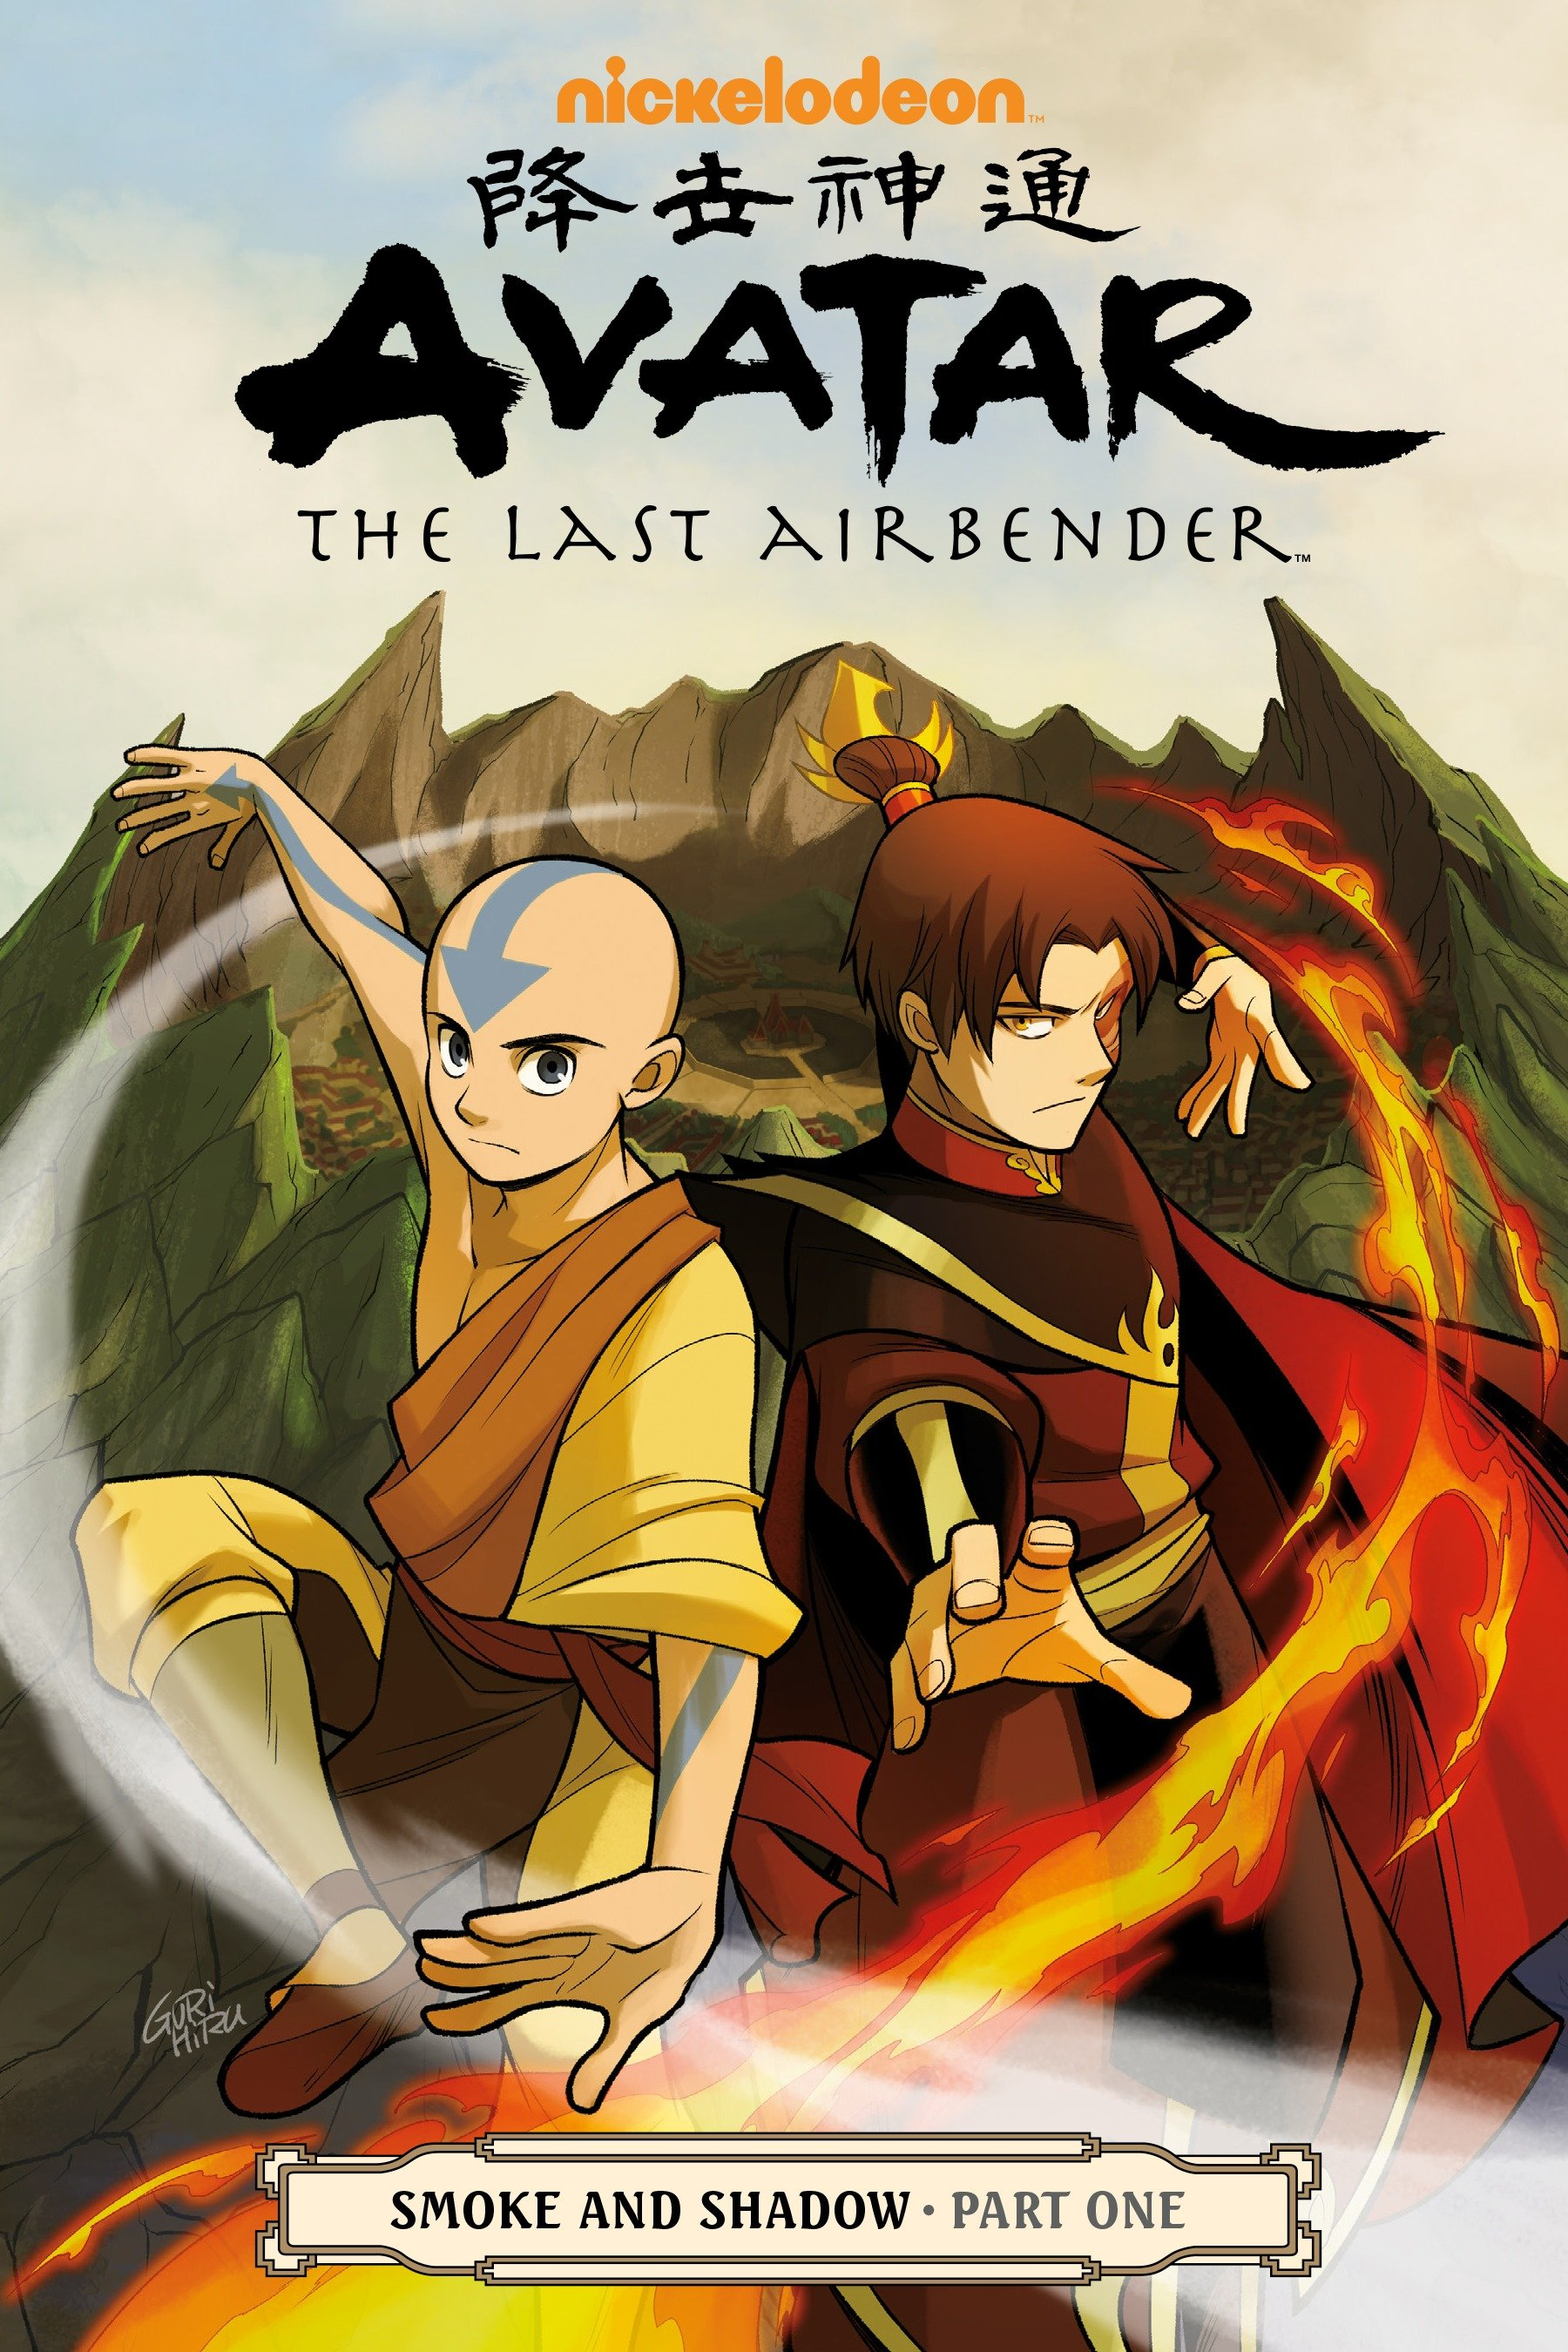 Avatar: The Last Airbender - Smoke and Shadow Part One [electronic resource]